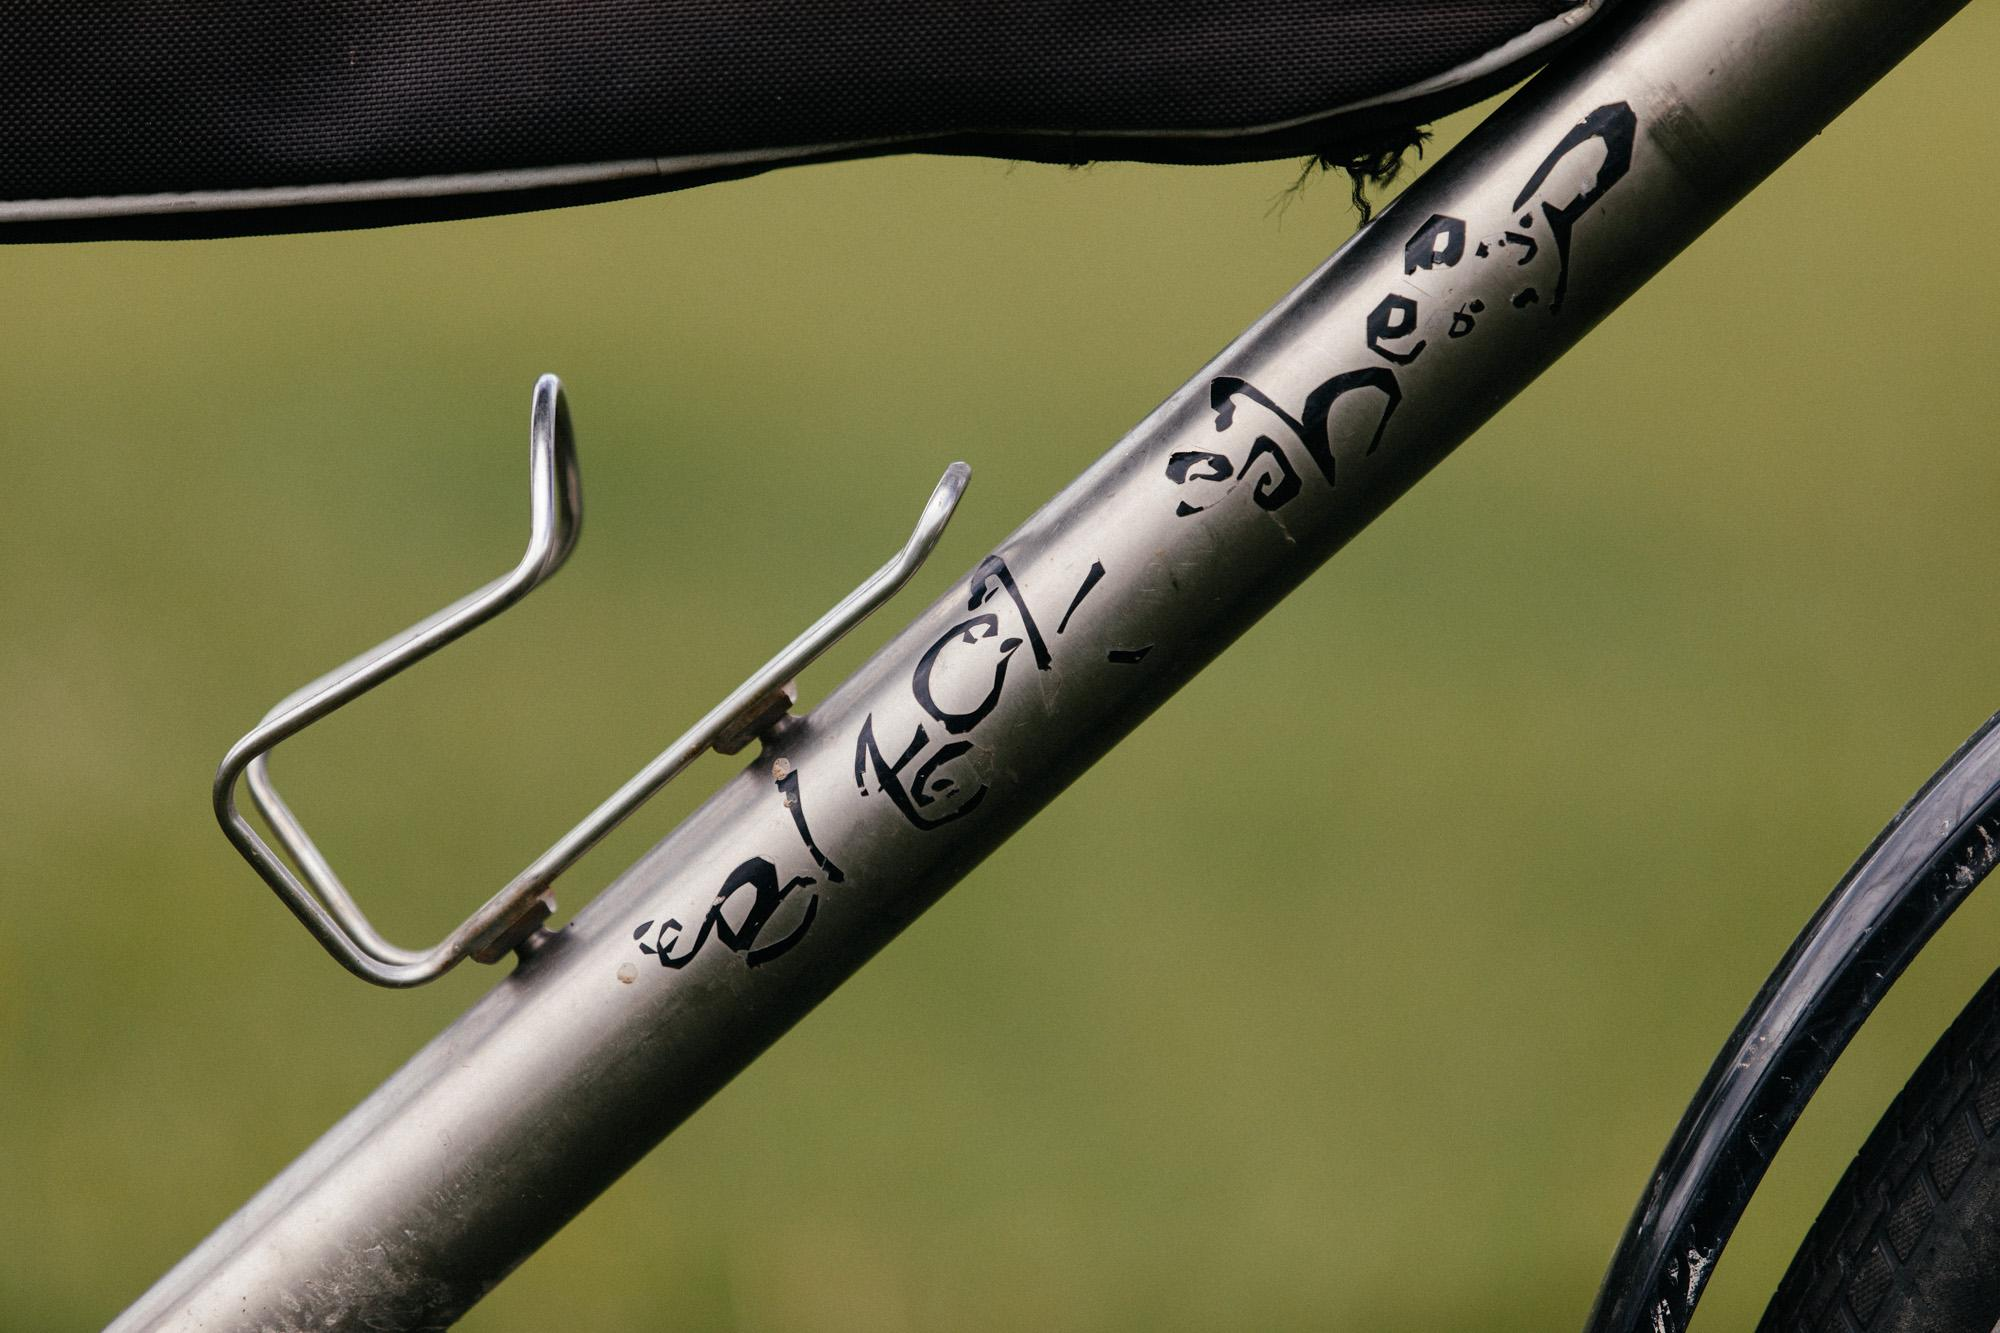 Sam's Black Sheep Lifetime Bike